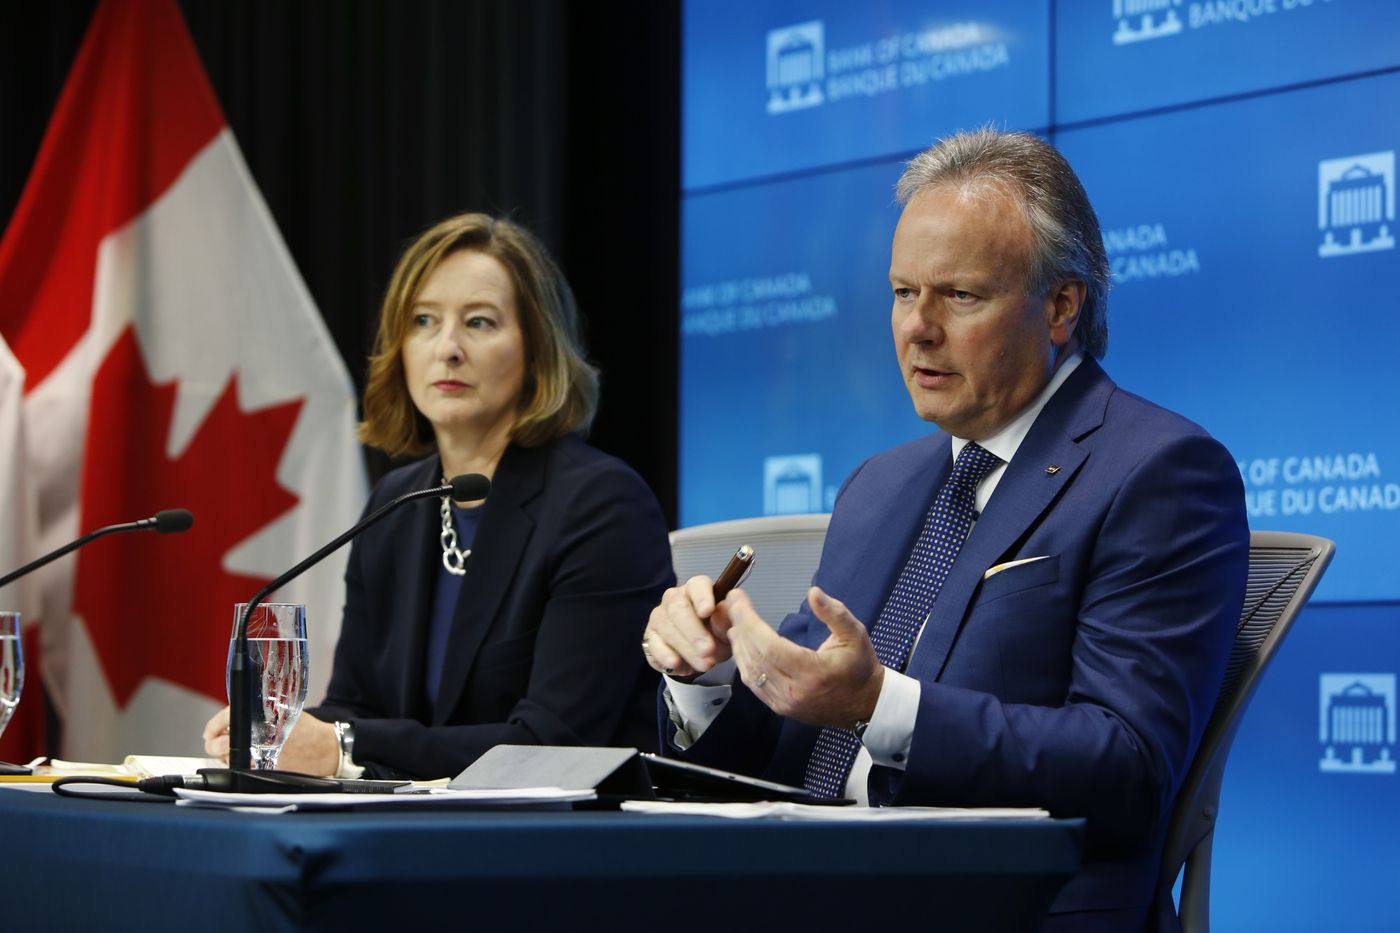 Rate Cuts Are No Panacea in a Trade War, Warns Bank of Canada